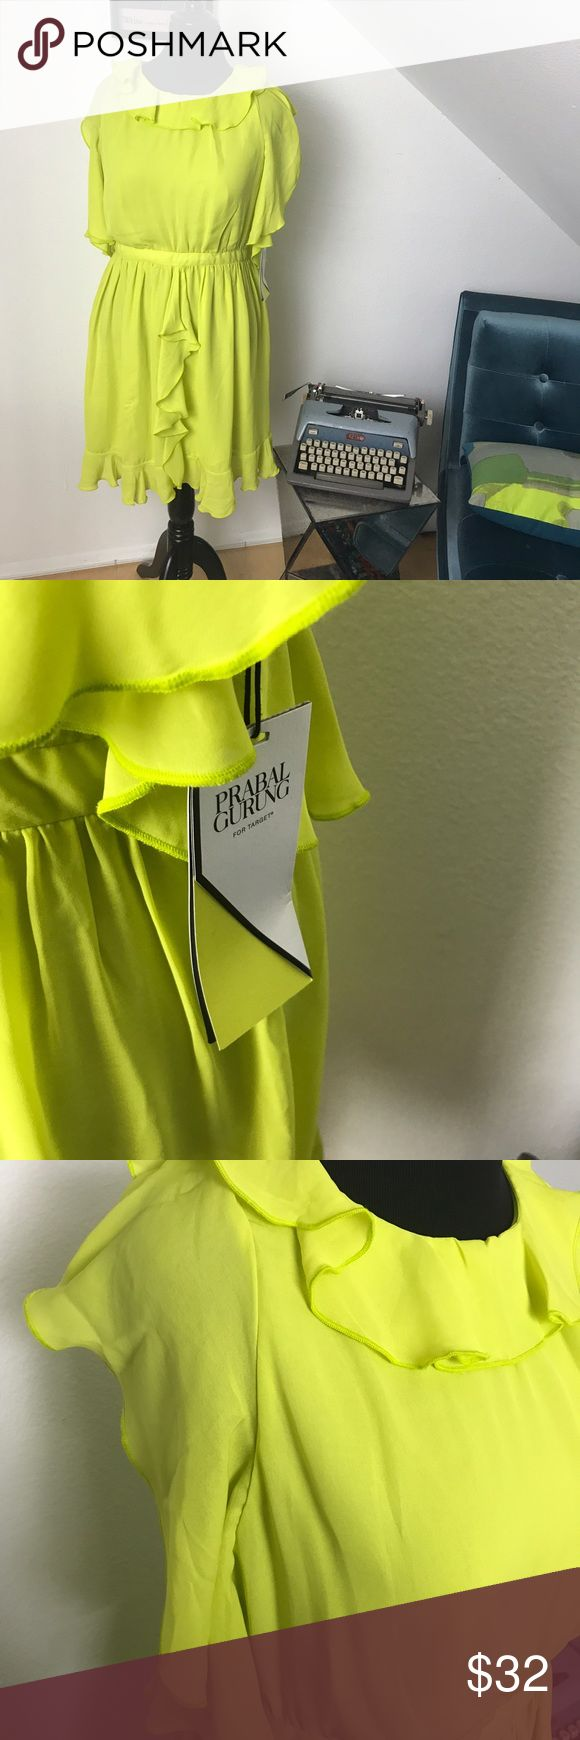 NWT Prabel Gurung for Target Dress Neon Yellow Dress, perfect for summer. 24 hour 50% off sale ✨🌟💫 Prabal Gurung for Target Dresses